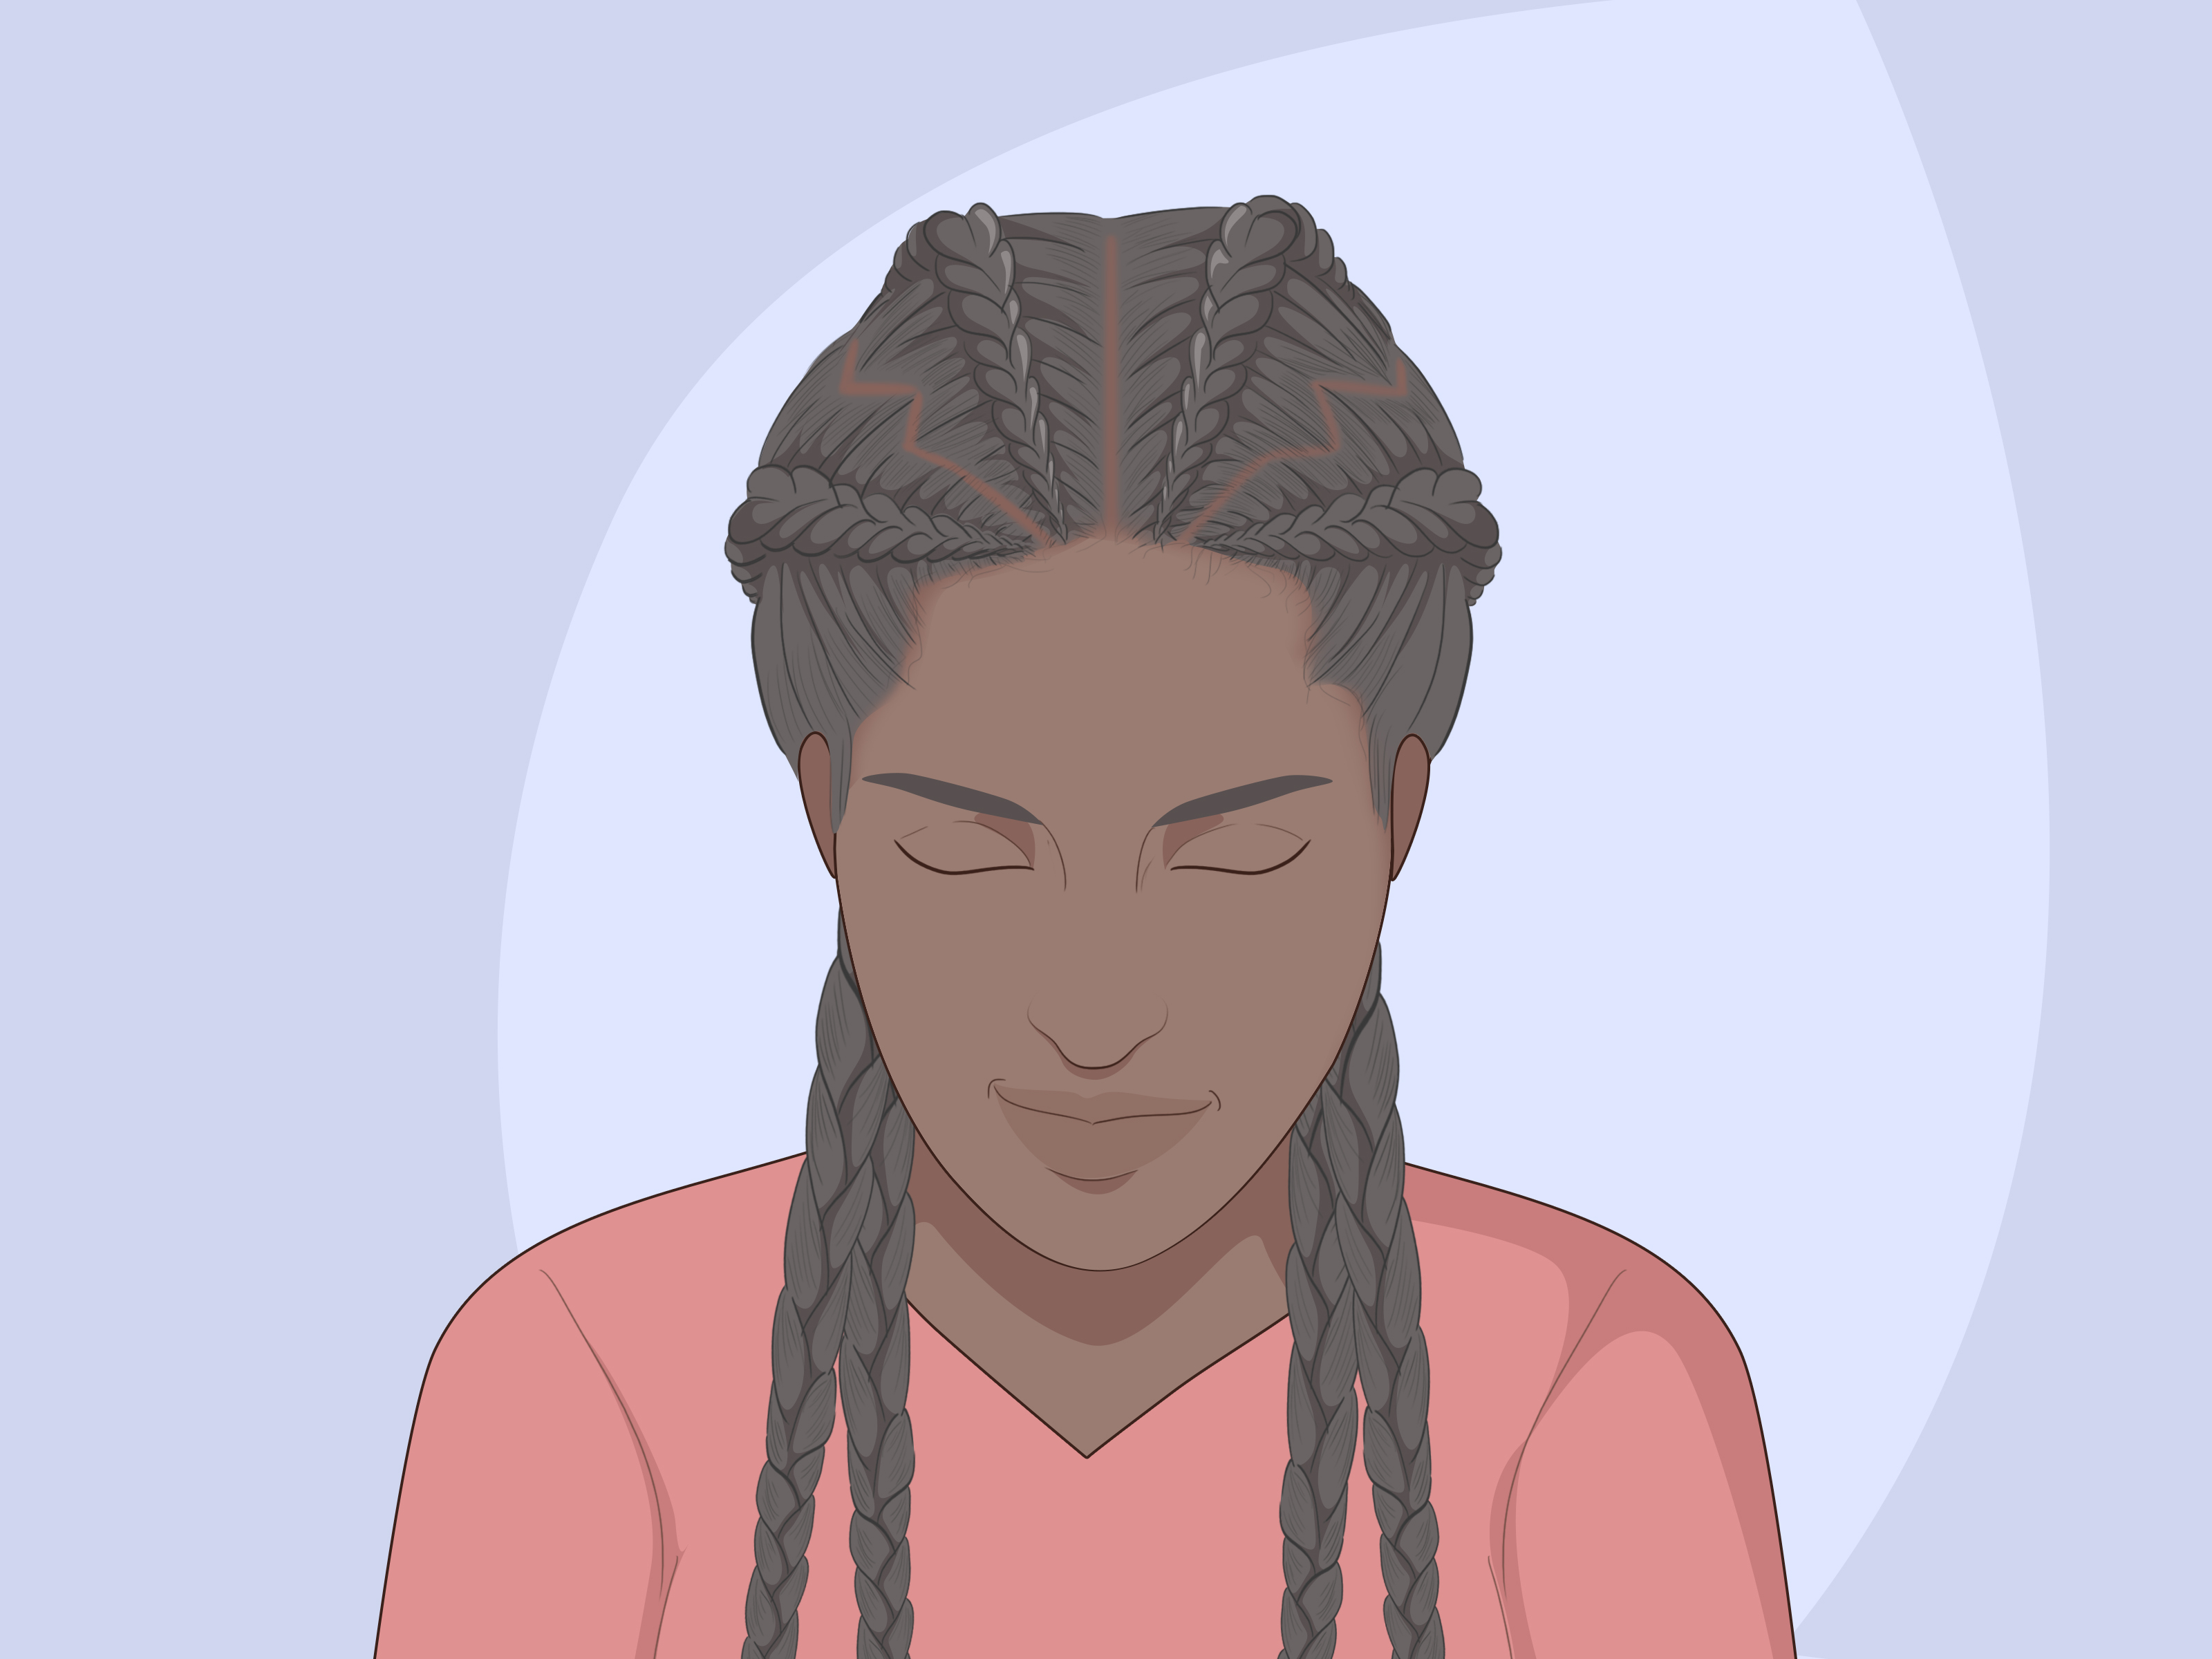 2019 Tight Black Swirling Under Braid Hairstyles Inside How To Braid Cornrows: 11 Steps (with Pictures) – Wikihow (View 11 of 20)